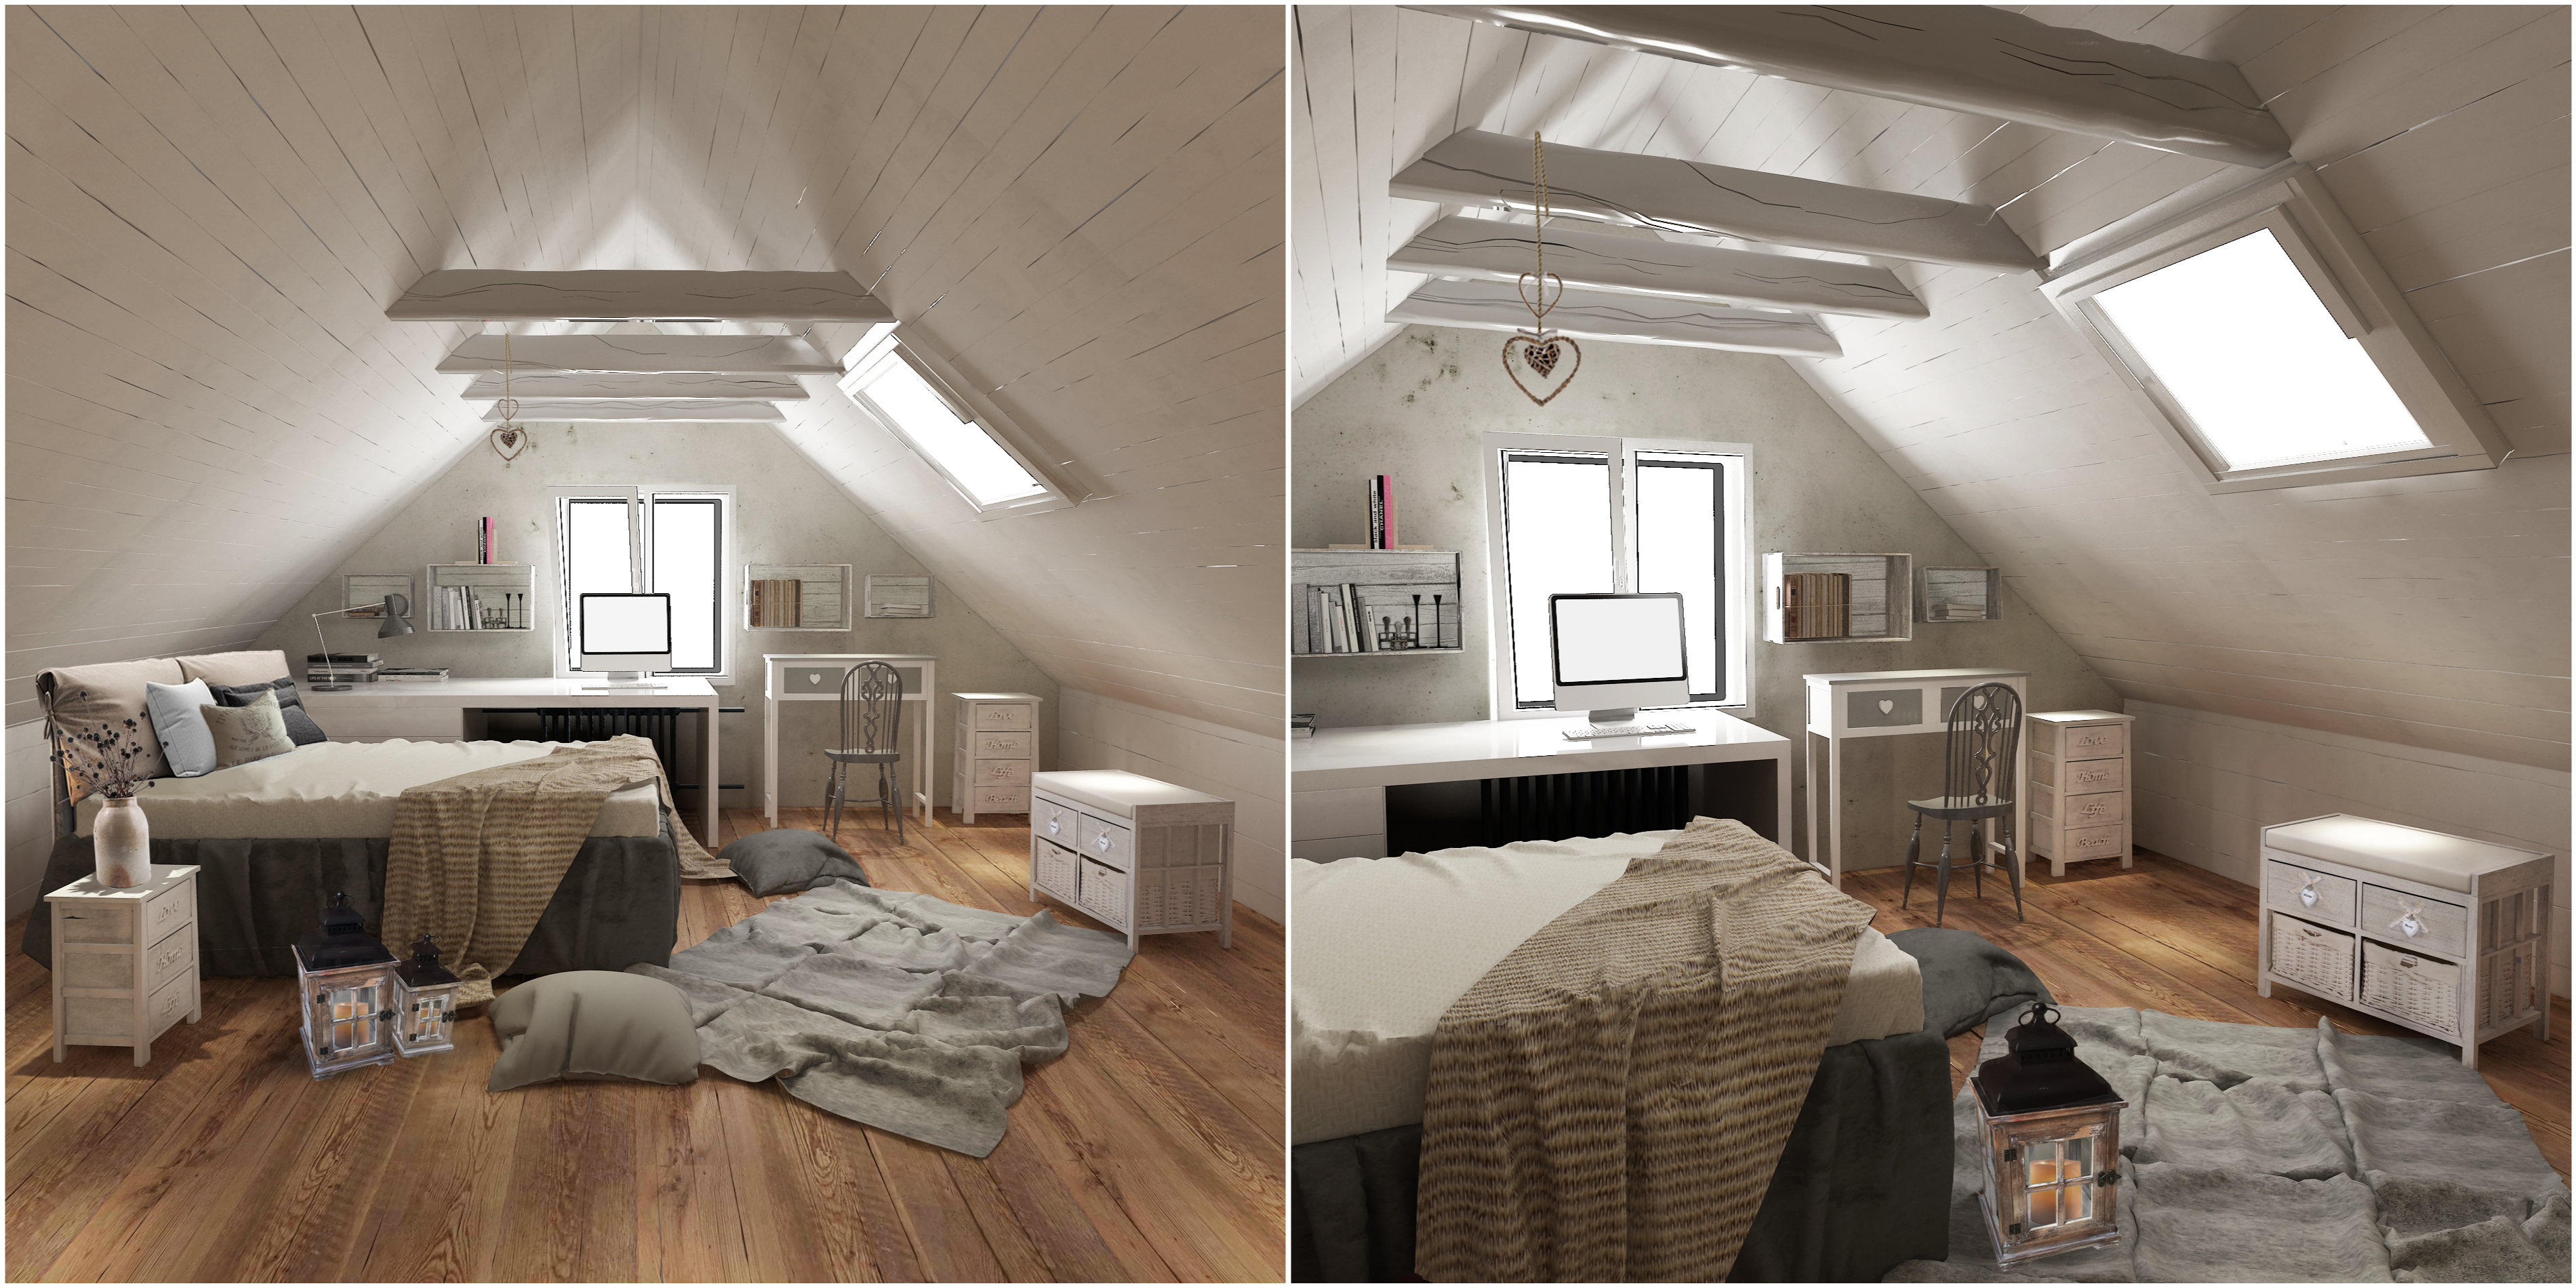 5 idee per arredare la camera da letto in stile shabby chic for Camera arredata